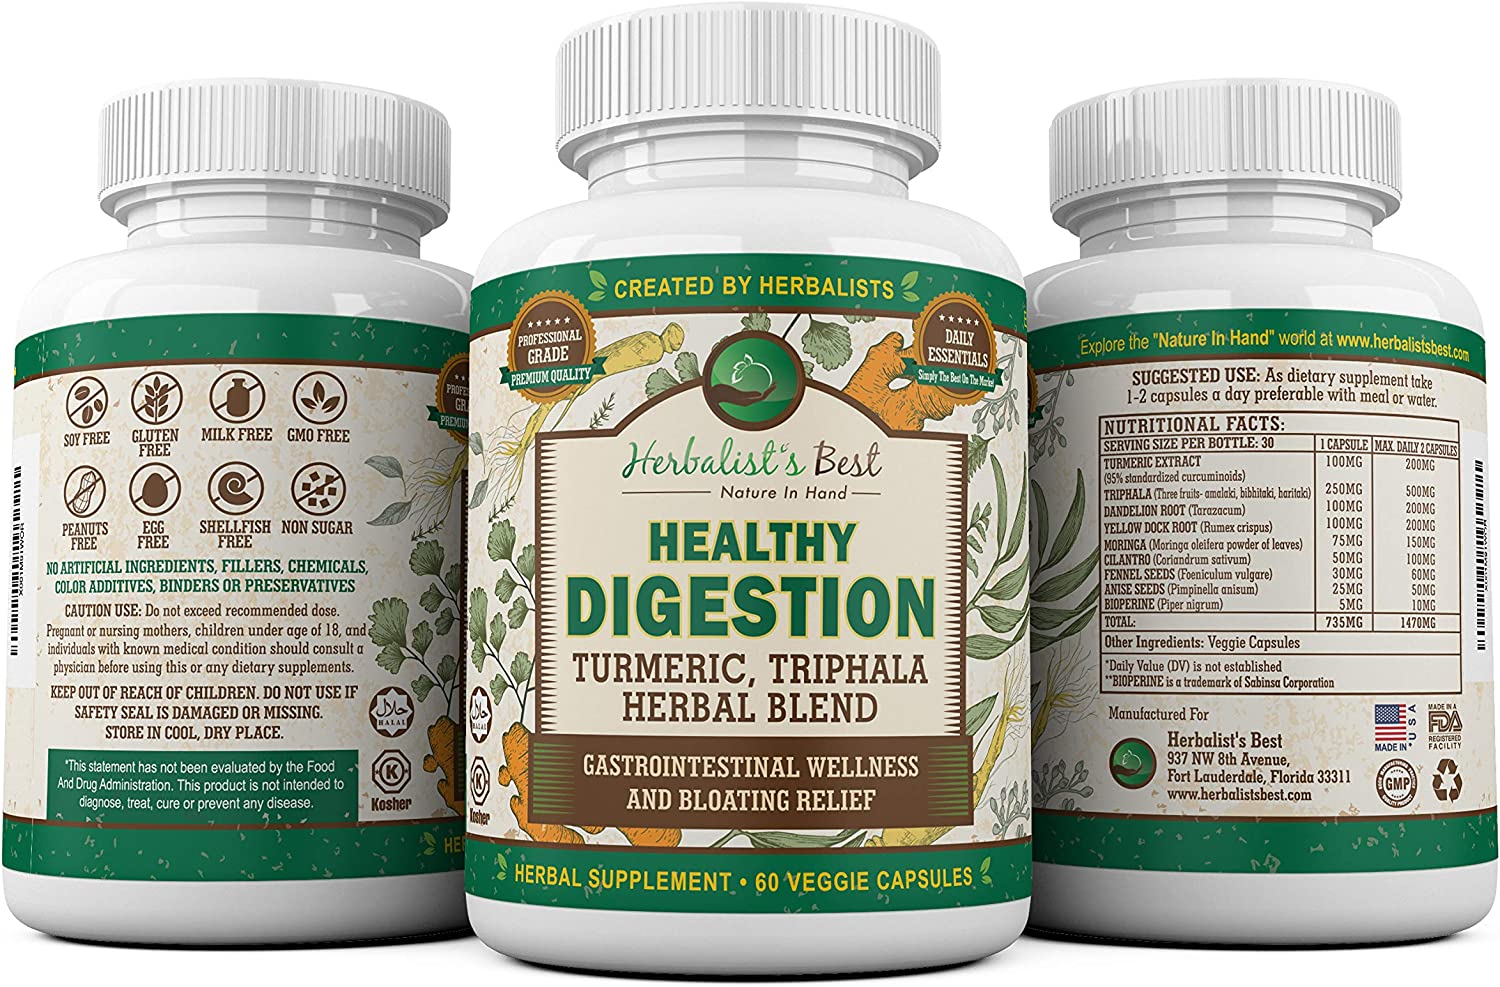 3 Bottles of Healthy Digestion Restores Gut Health I Turmeric Triphala Yellow Dock Aid Colon Cleanse Liver Detox Arthritis Bloating Gas I Probiotic Alternative I Boosts Wellness by Herbalist s Best